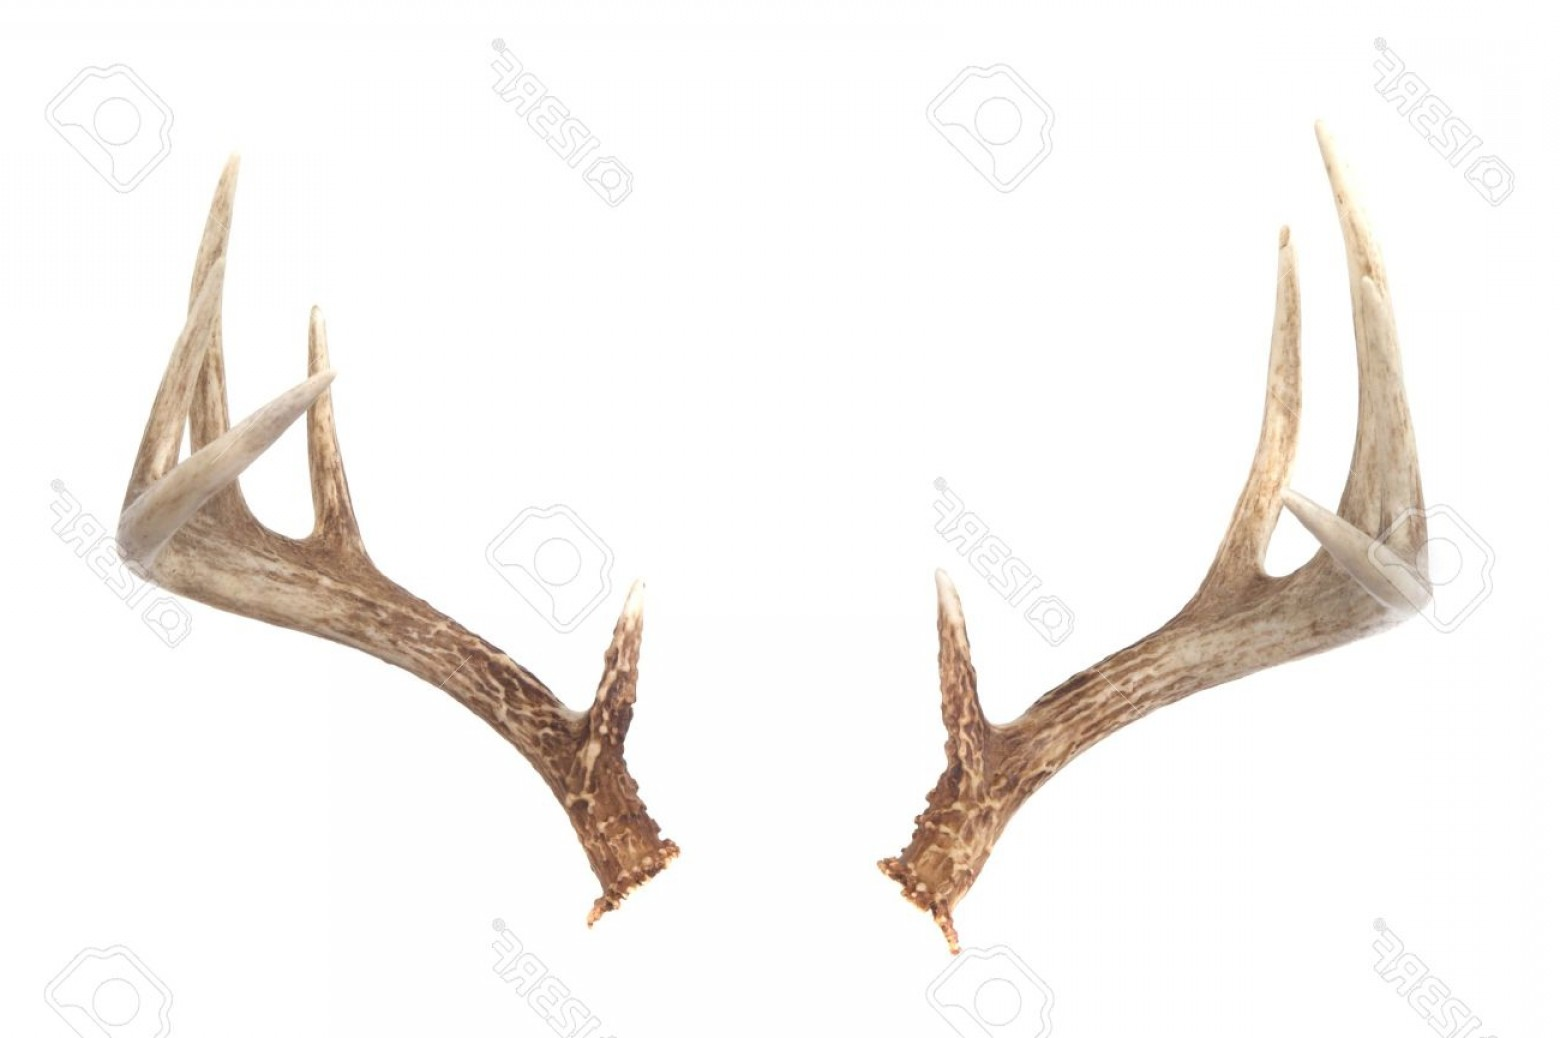 1560x1038 Whitetail Deer Antlers Vector Rongholland